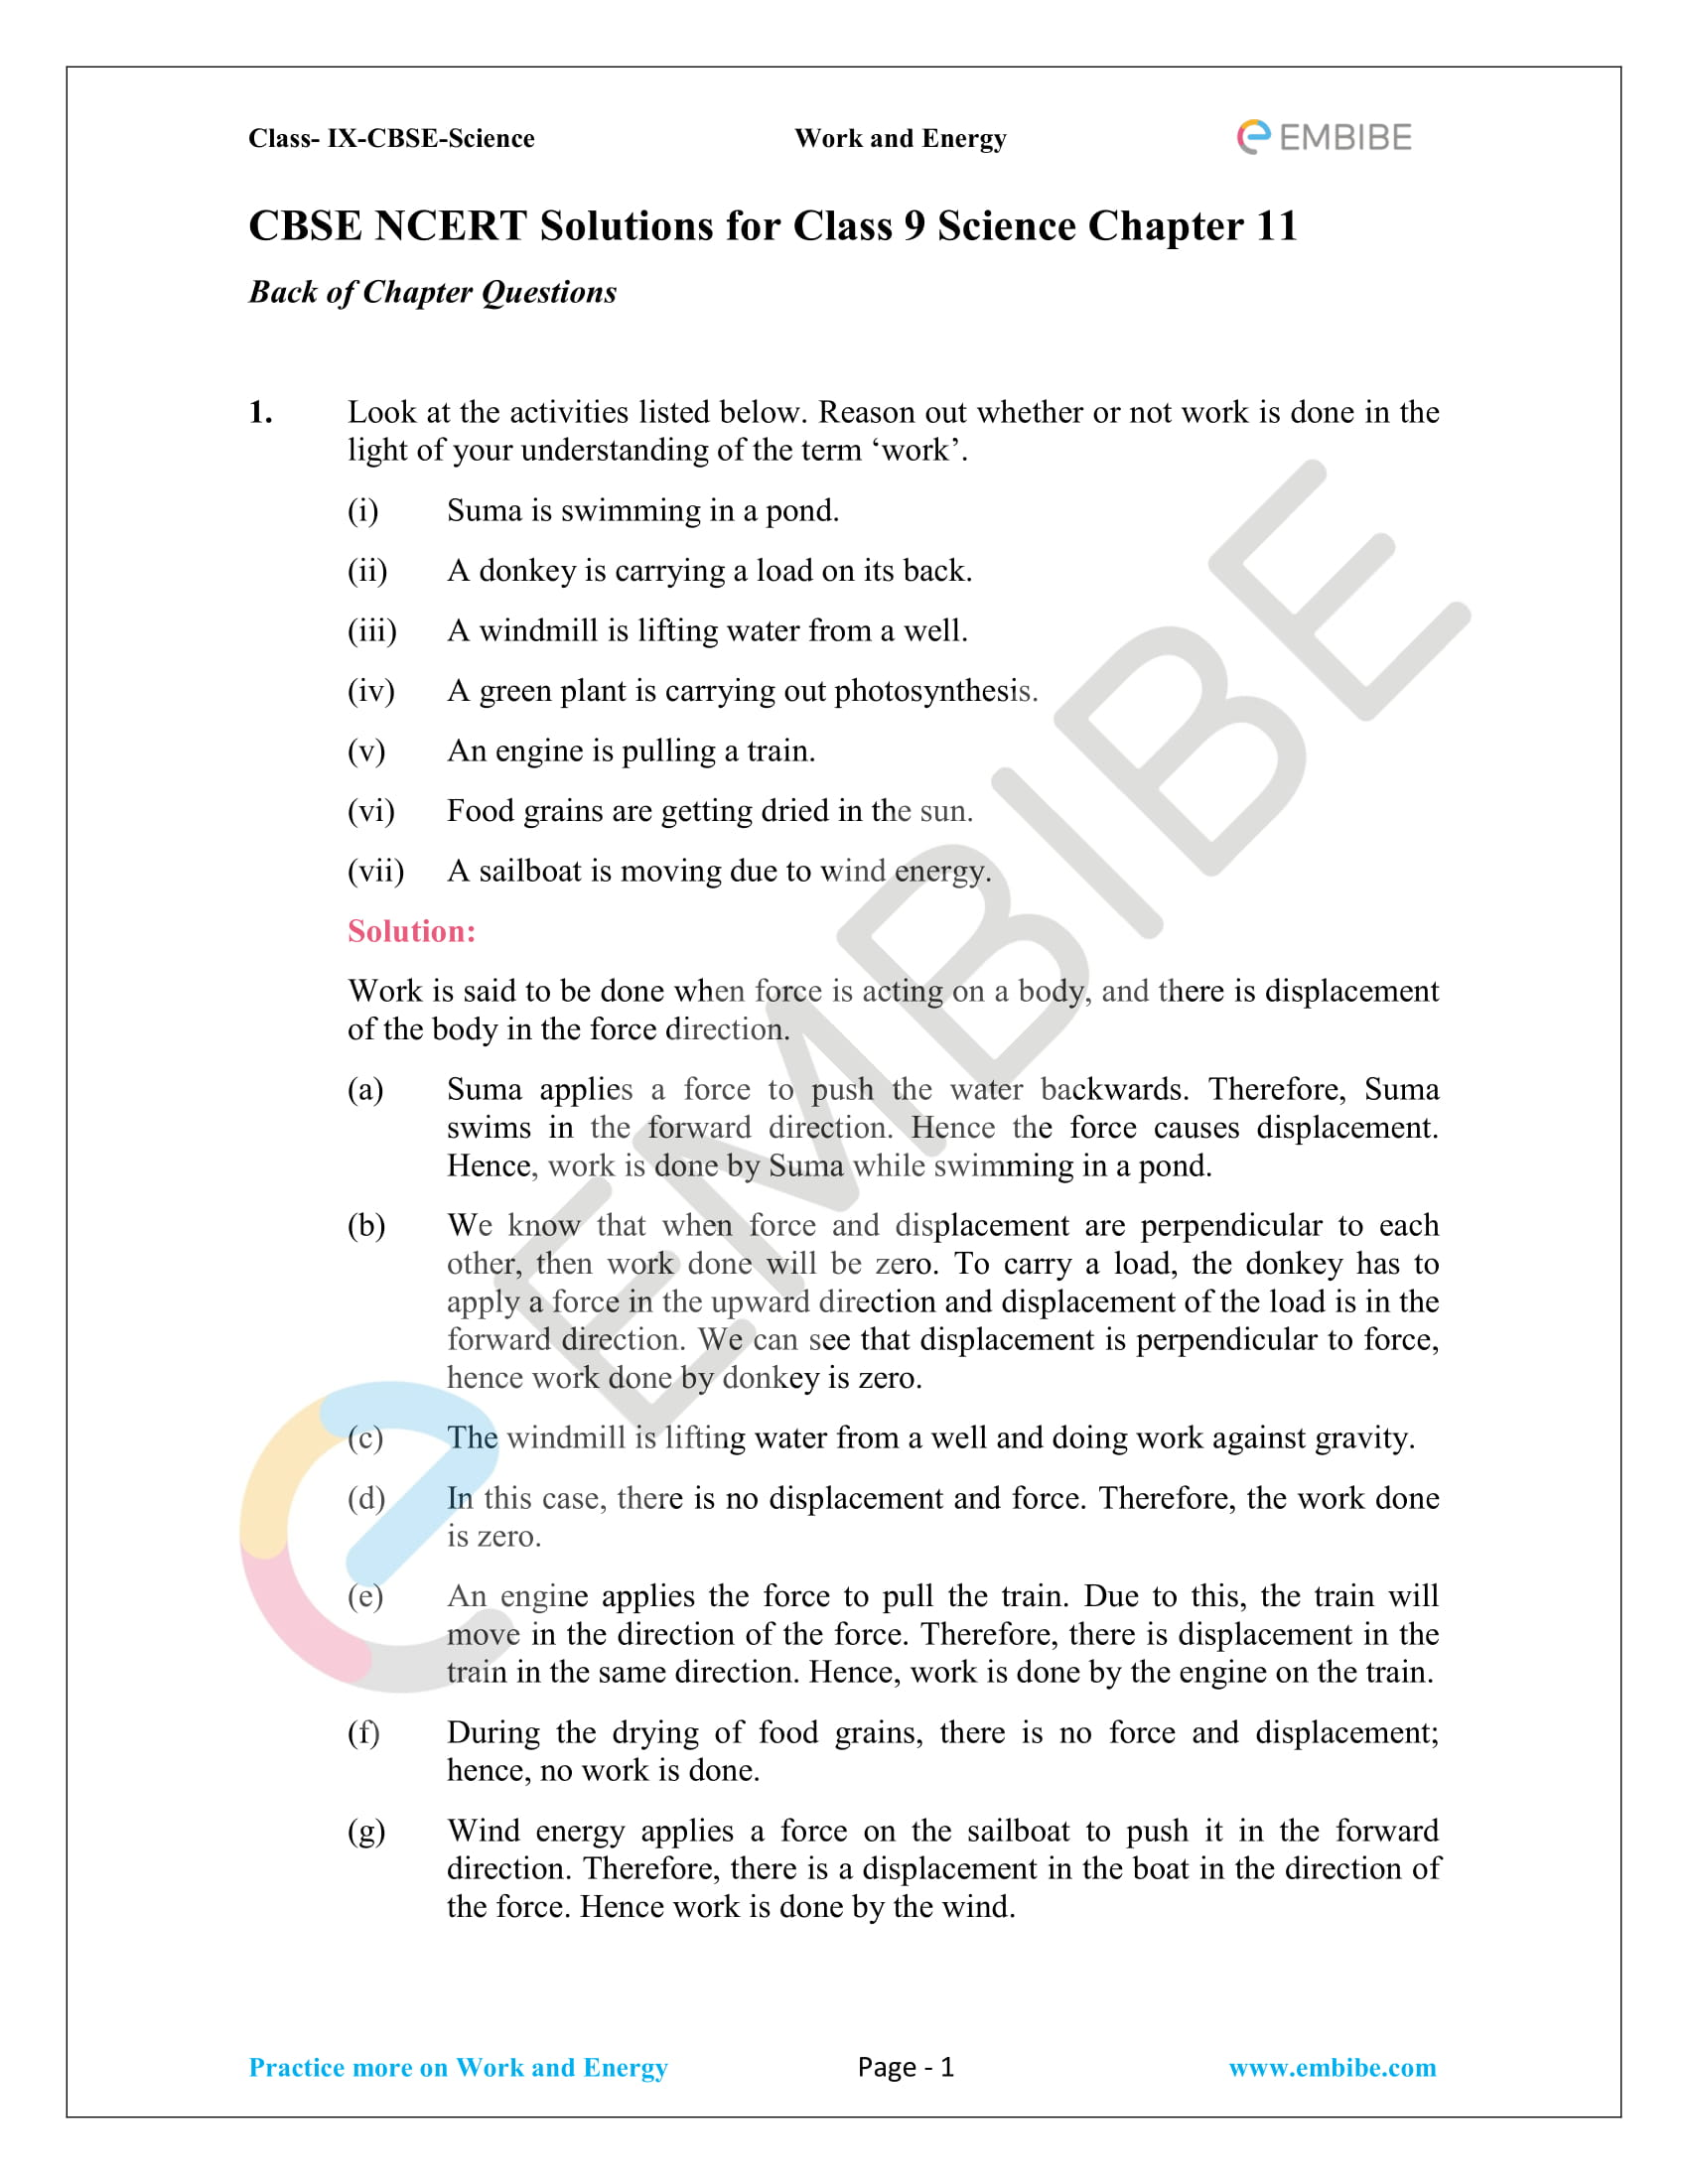 CBSE NCERT Solutions For Class 9 Science Chapter 11 – Work And Energy - 1